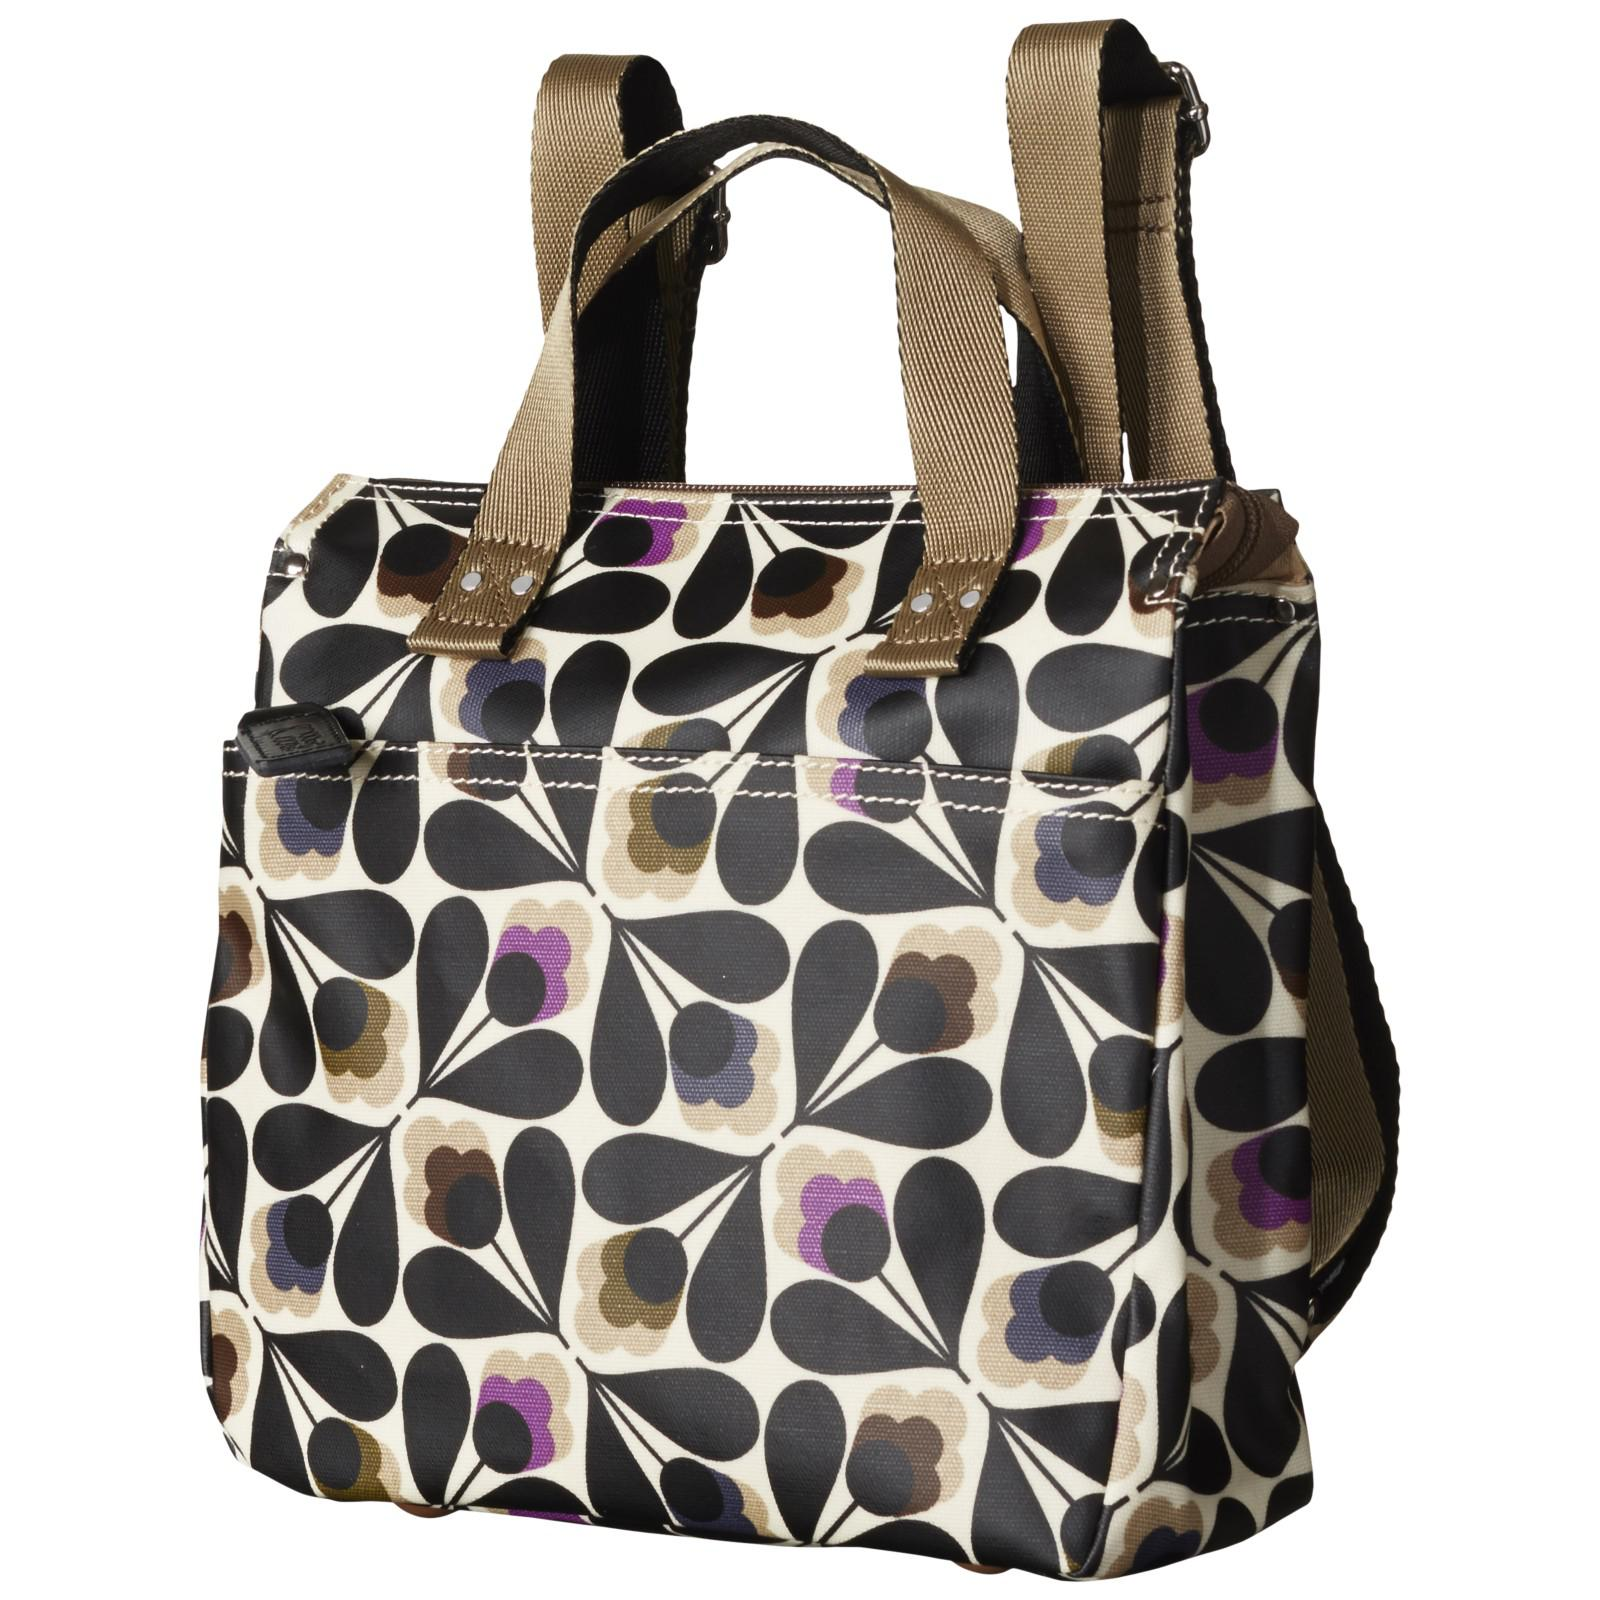 4e73f52ffe0a Orla Kiely Matte Laminated Sycamore Seed Backpack - Lyst